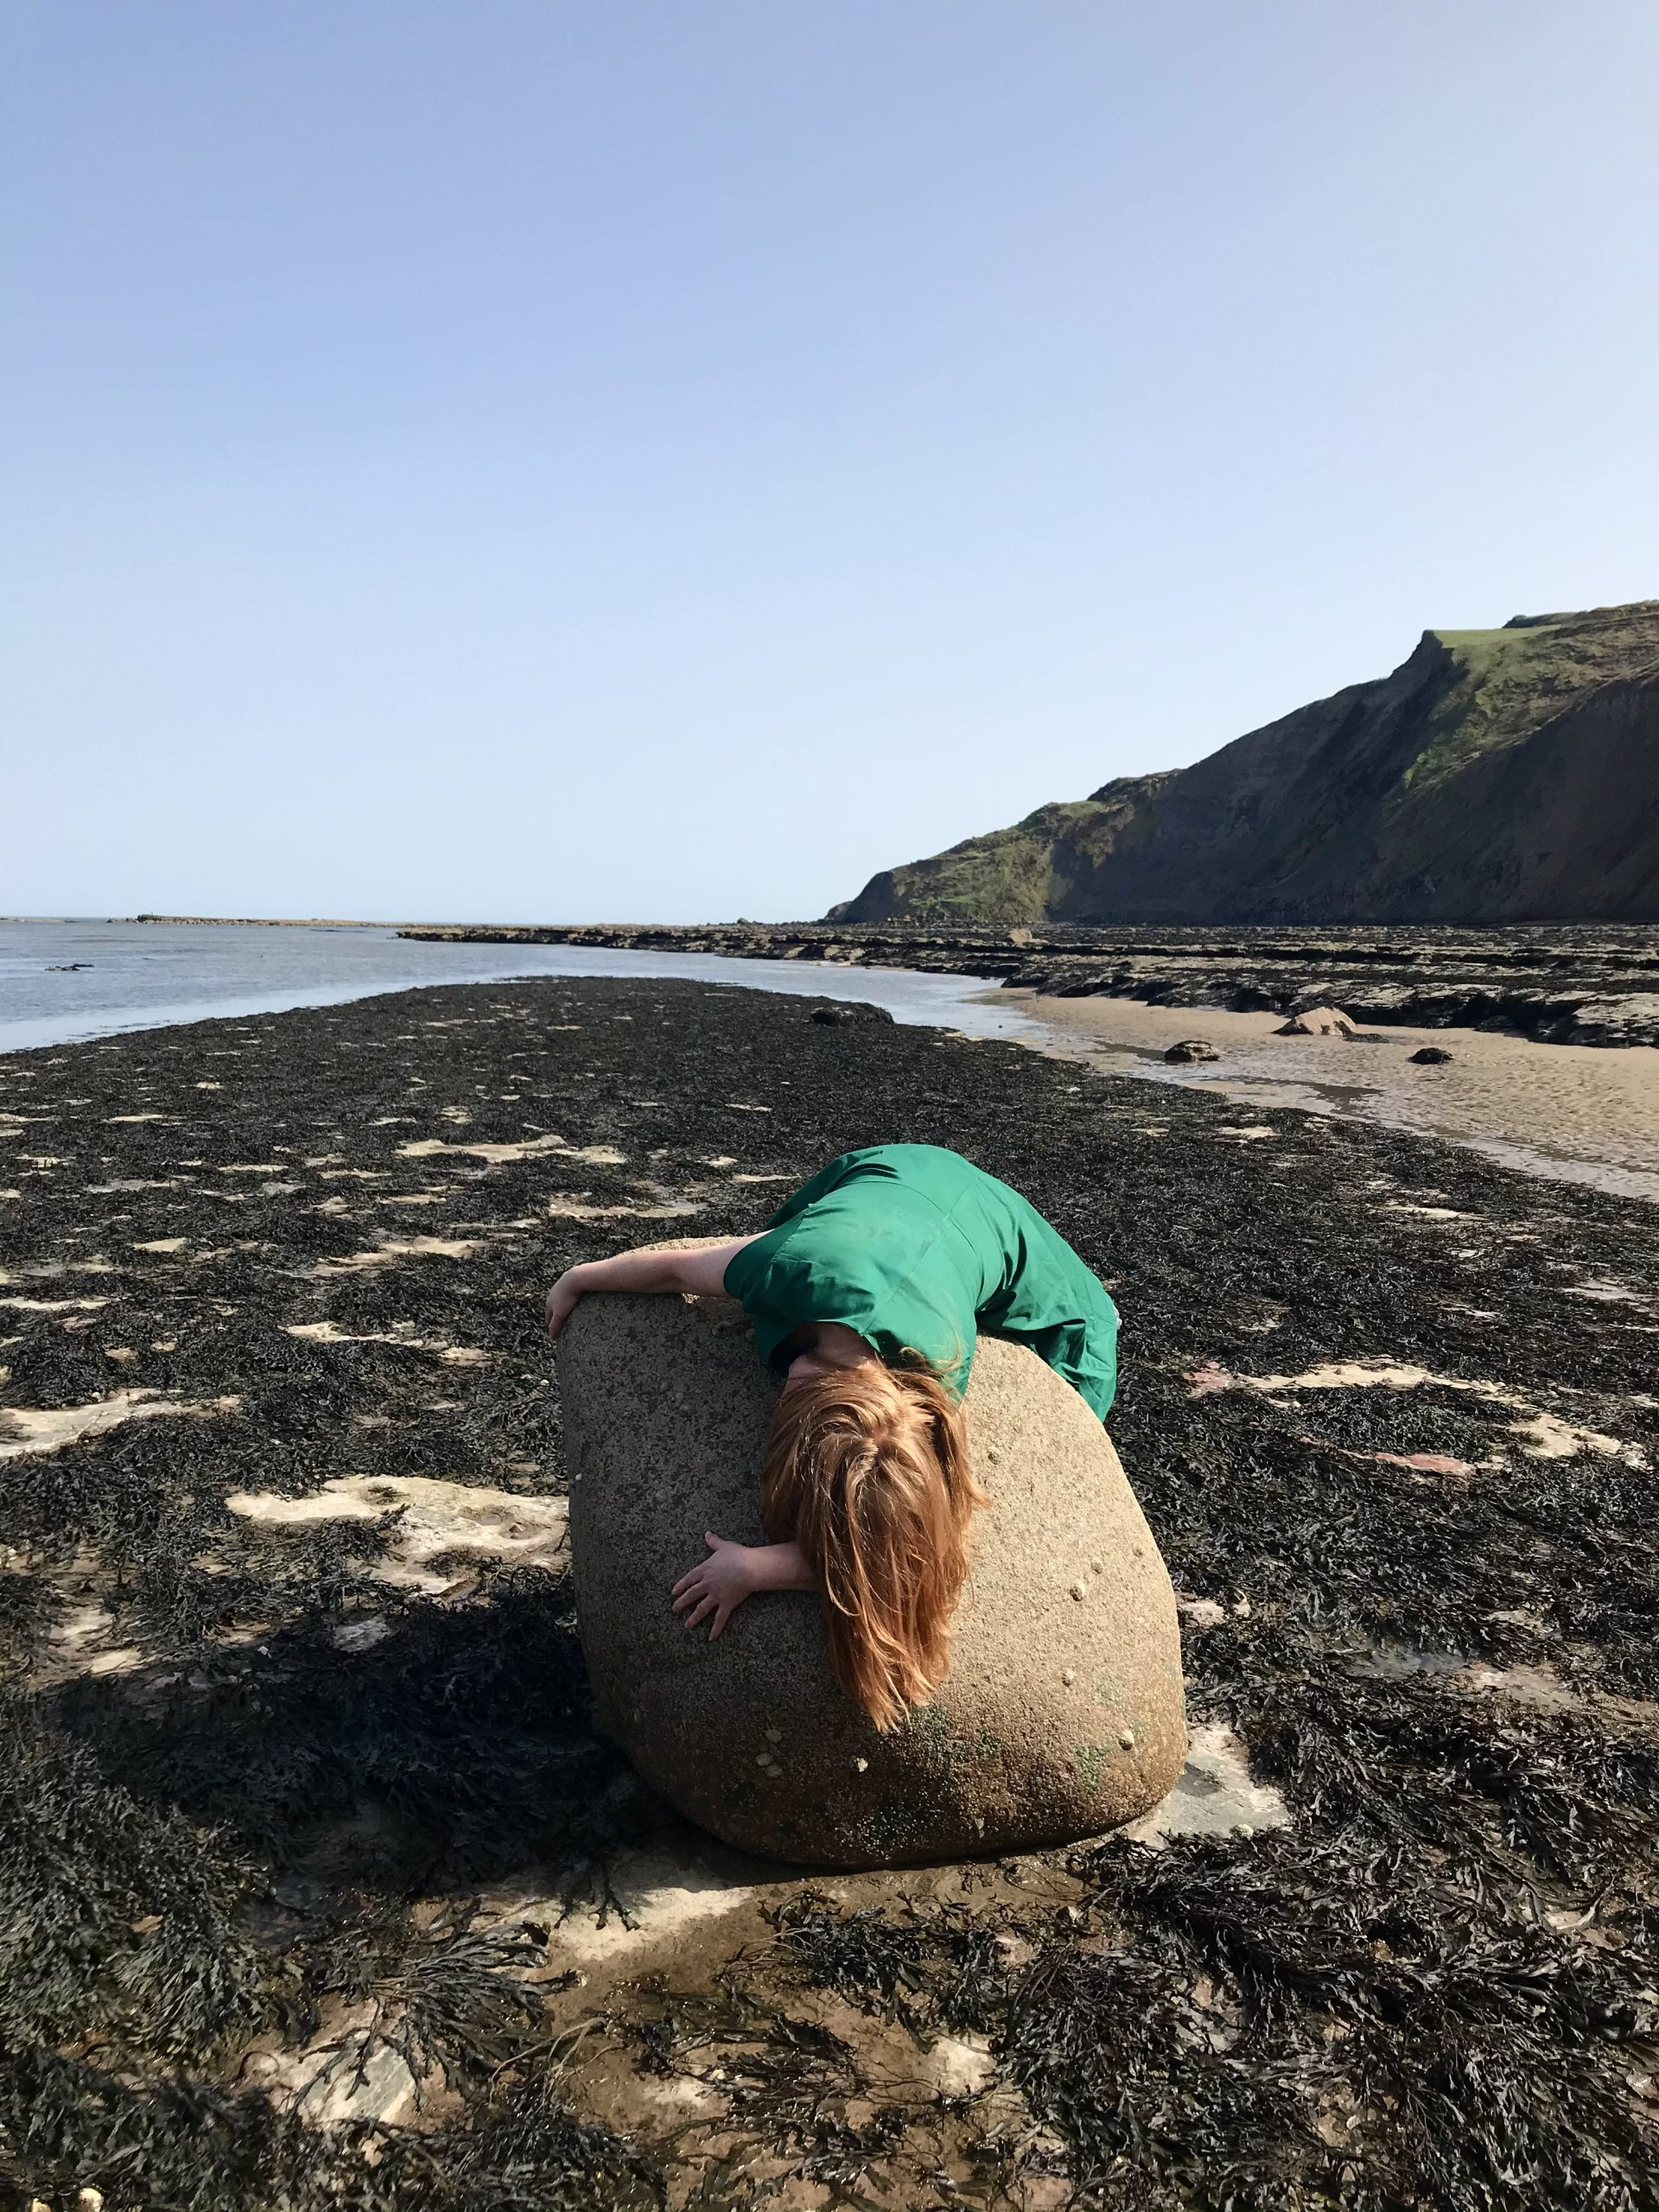 Ravenscar at low tide reveals an extraordinary number of fossils, rocks and scaurs that tell stories about costal erosion. This image captures Claire performing an action with a boulder, Norwegian in Origin, which has been deposited here from the last ice age.